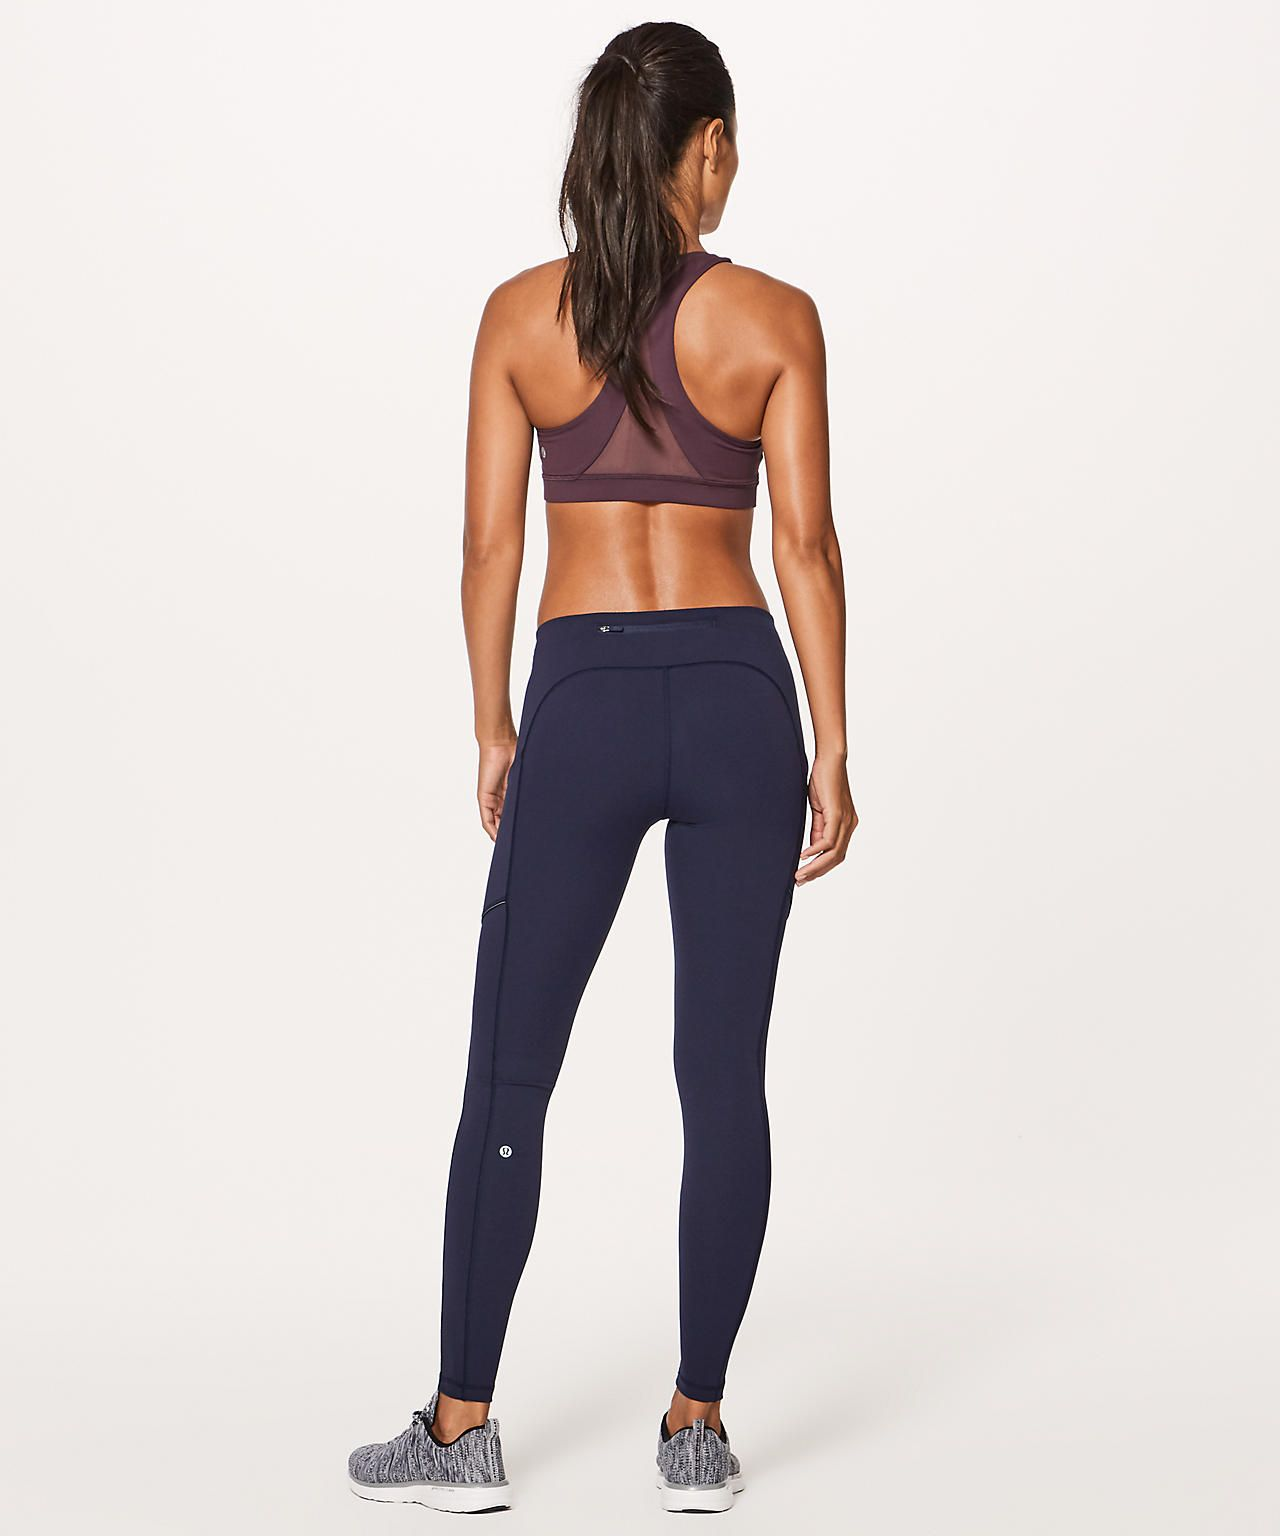 0d249949e9 Lululemon speed up tight   midnight navy